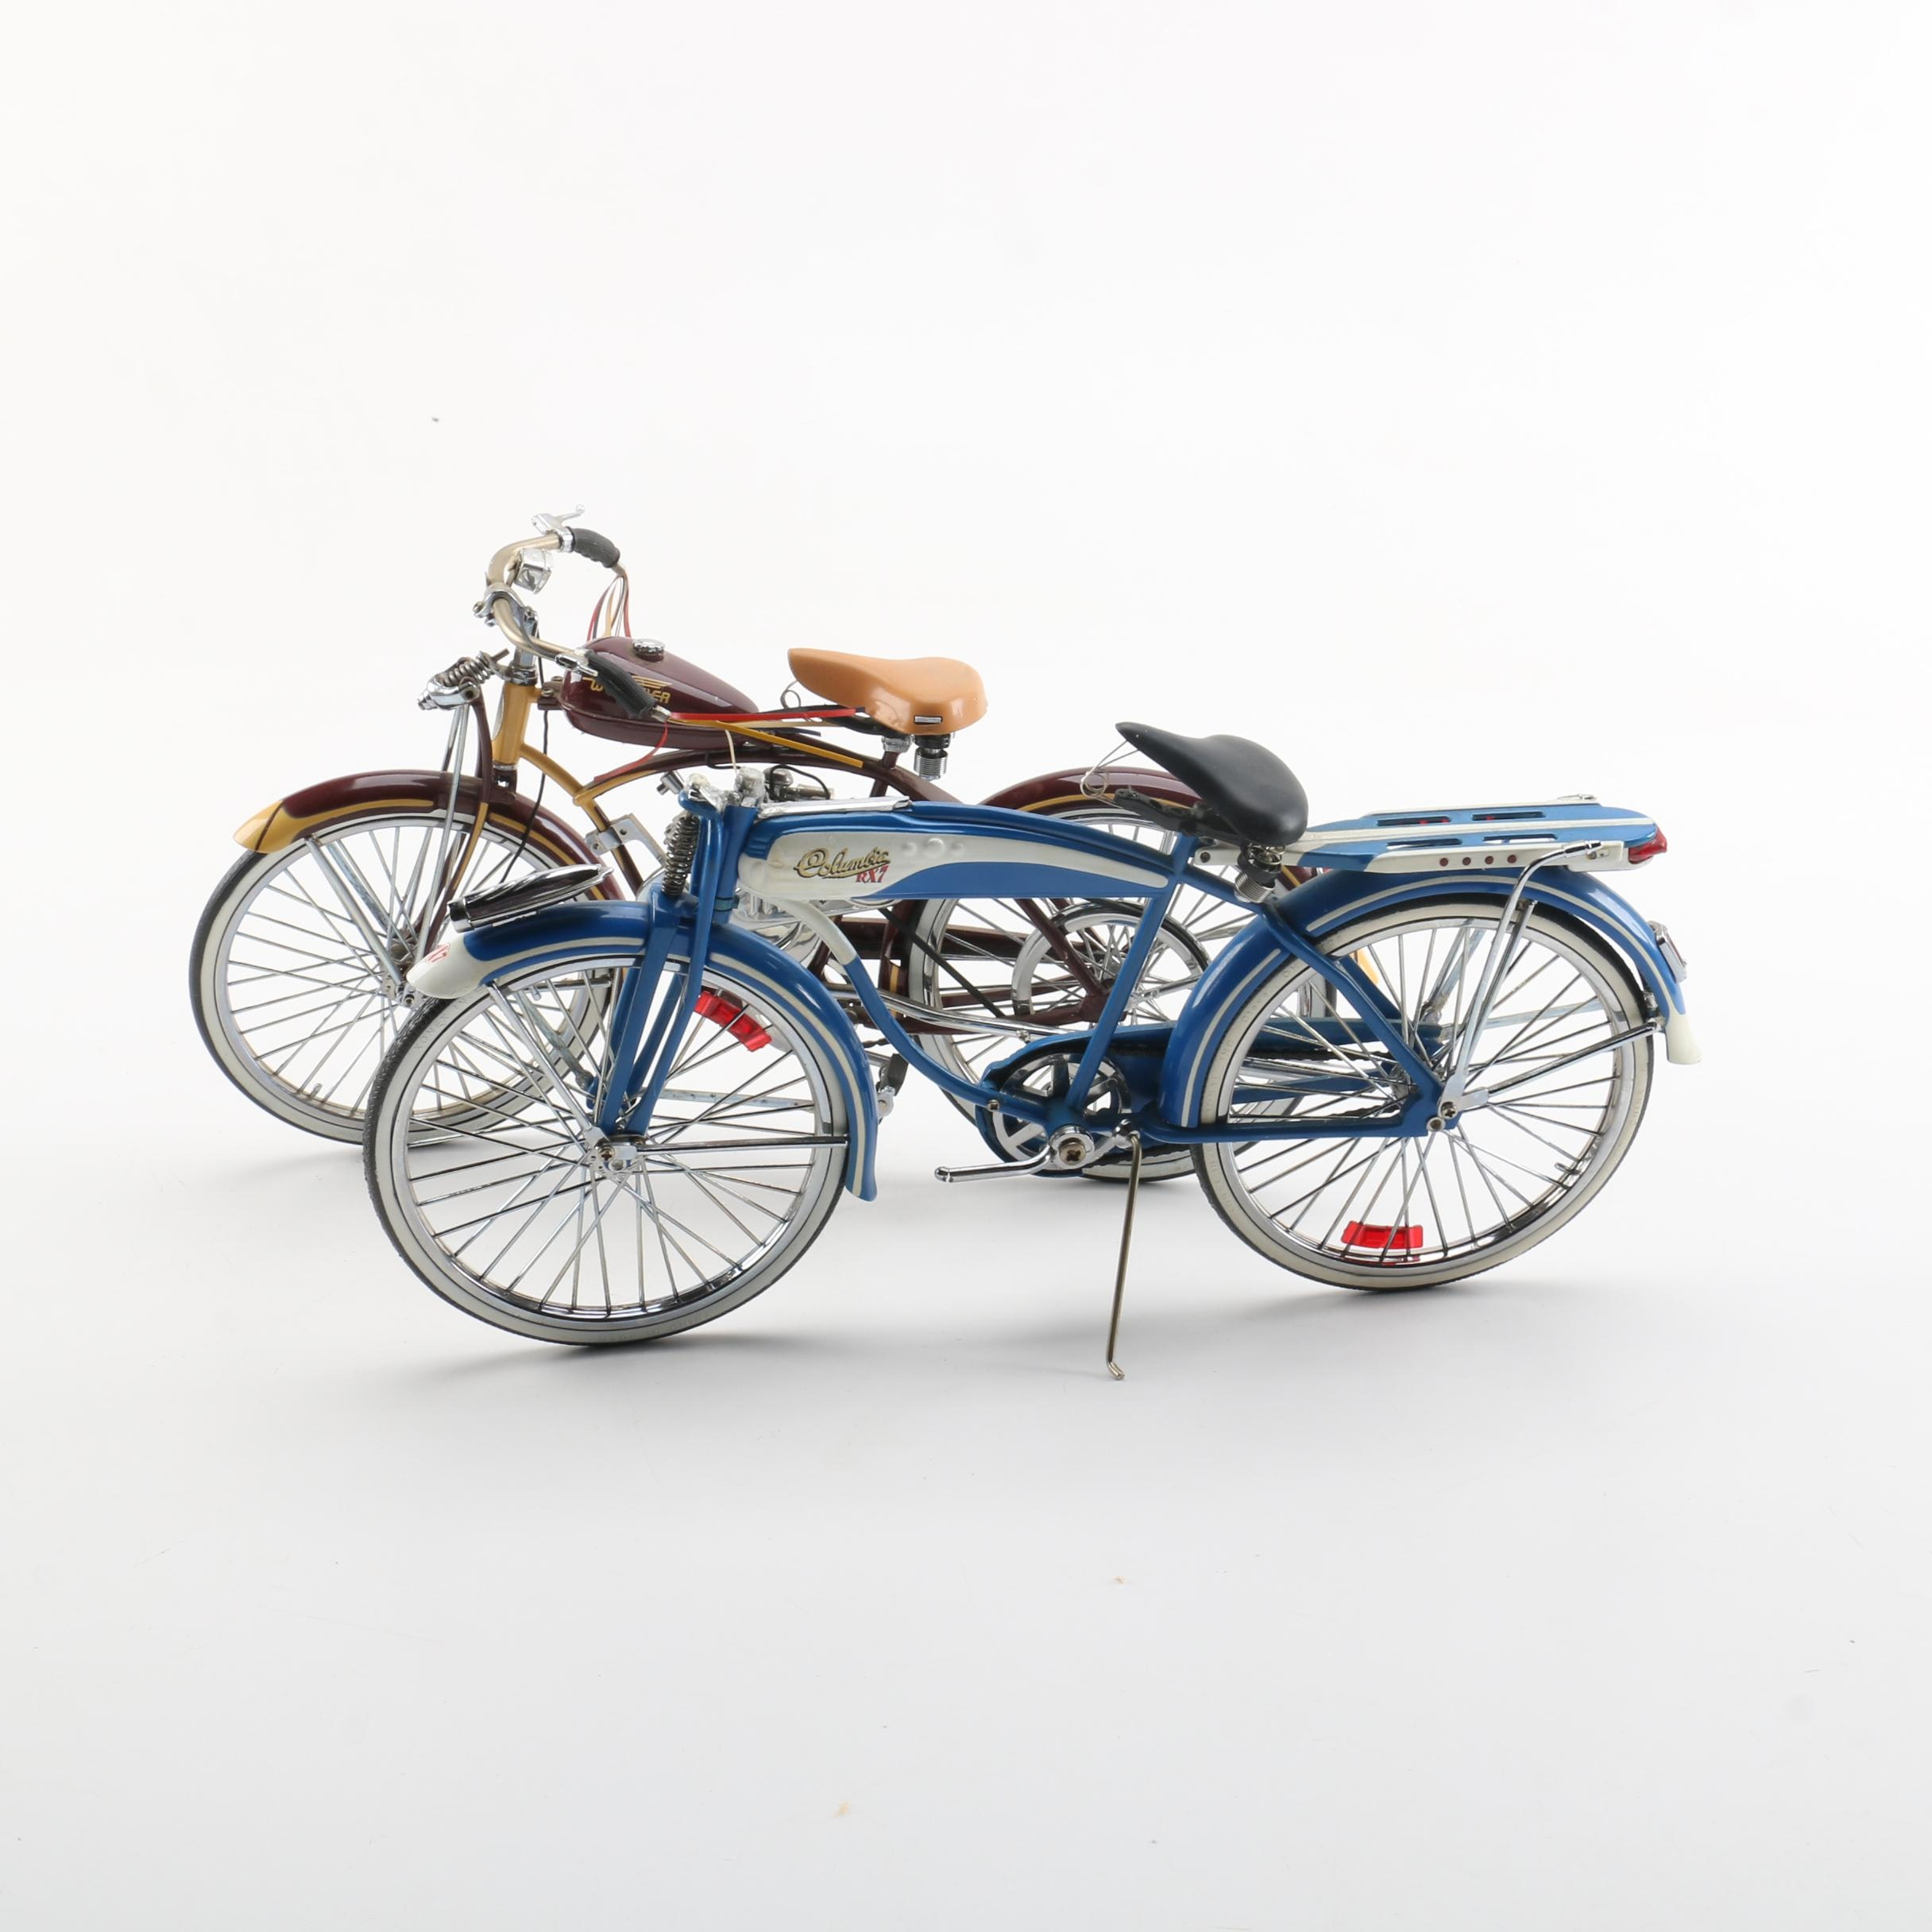 Columbia RX7 and 1948 Schwinn Whizzer Diecast Scale Model Replica Bicycles